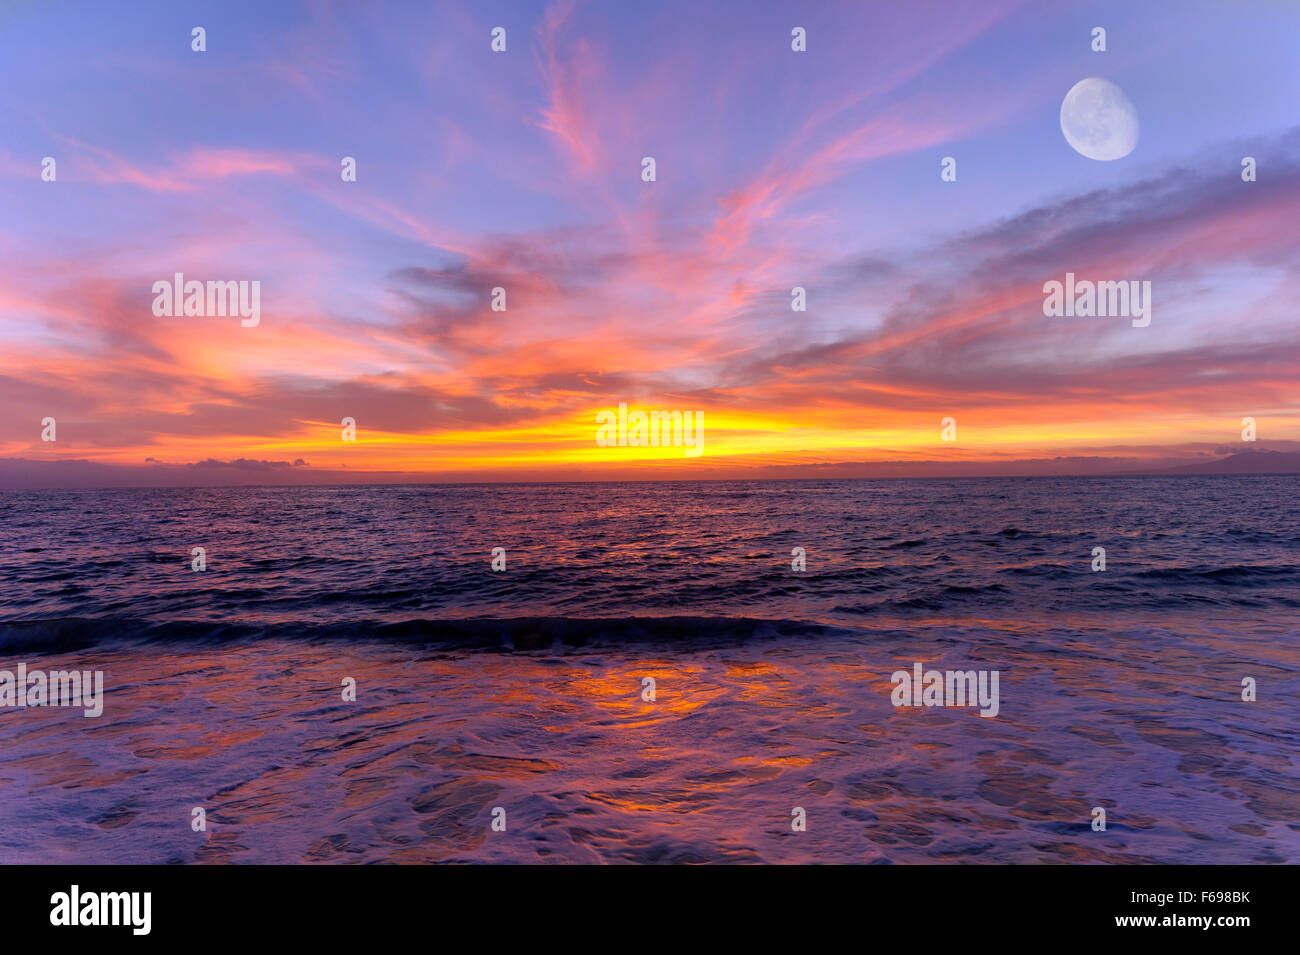 Ocean sunet moon is a colorful cloud filled sky over the ocean with a three quarter moon rising high in the sky. Stock Photo